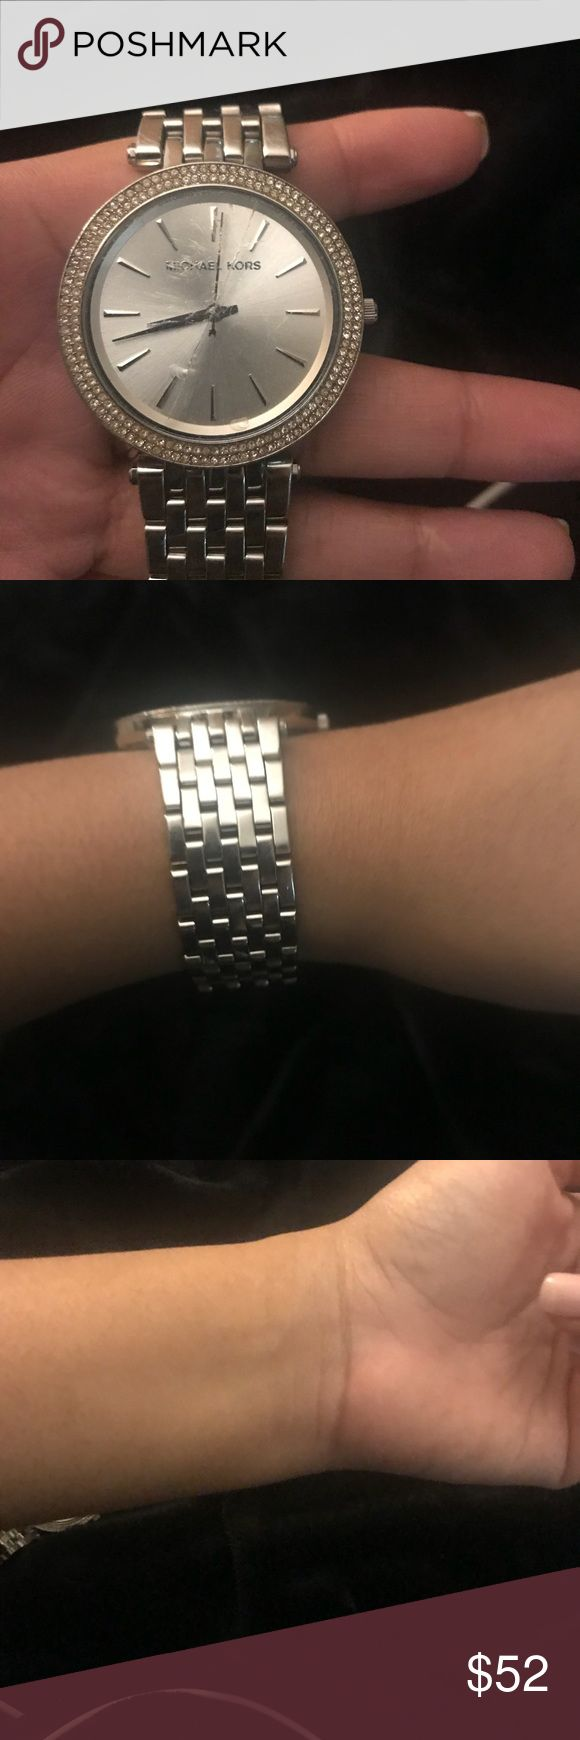 MK WATCH ! Cracked screen. **** MK watch silver / cracked screen as seen in pictures. Size: Petite wrist /Comes with box. Screen repair runs from $10-30dollars. Michael Kors Accessories Watches